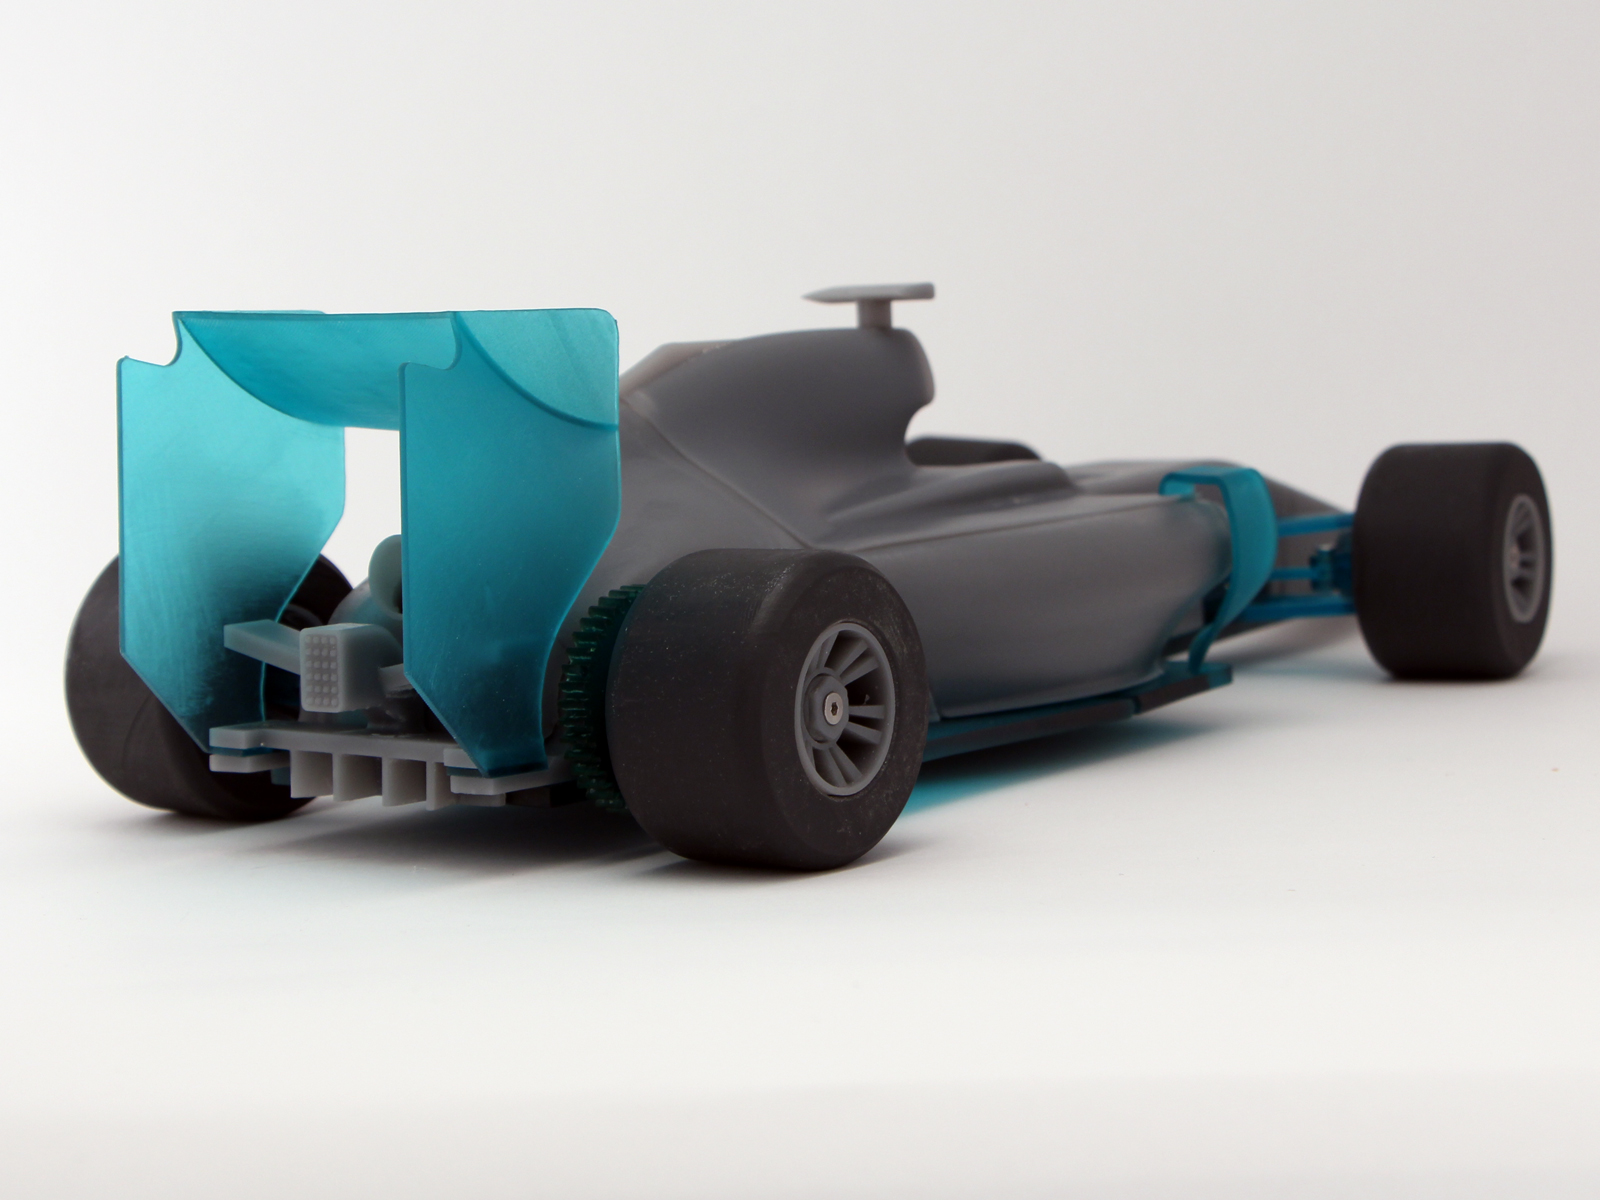 3d printed RC car formlabs